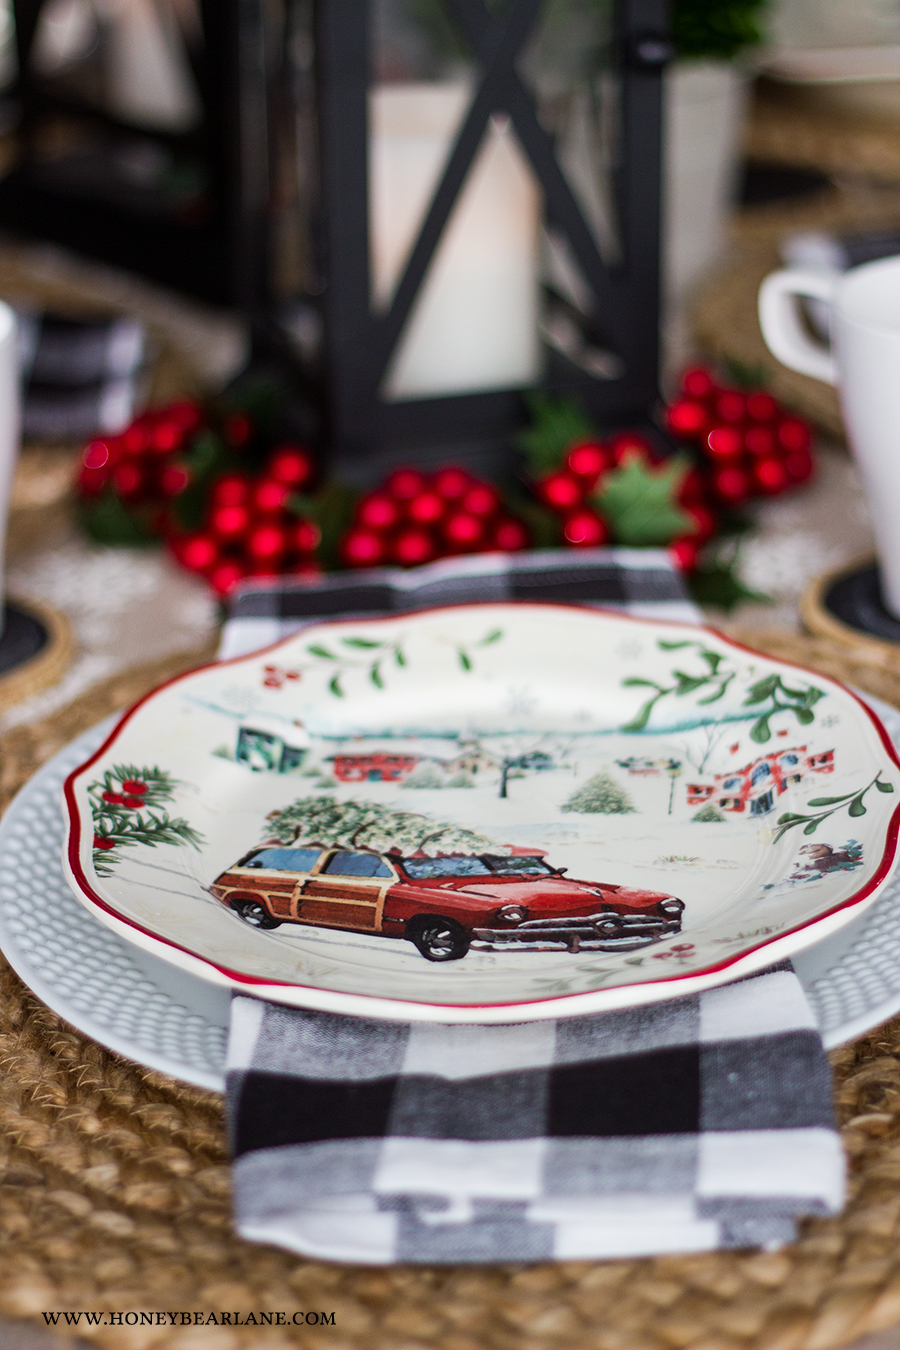 & Vintage Christmas Table Setting - Honeybear Lane